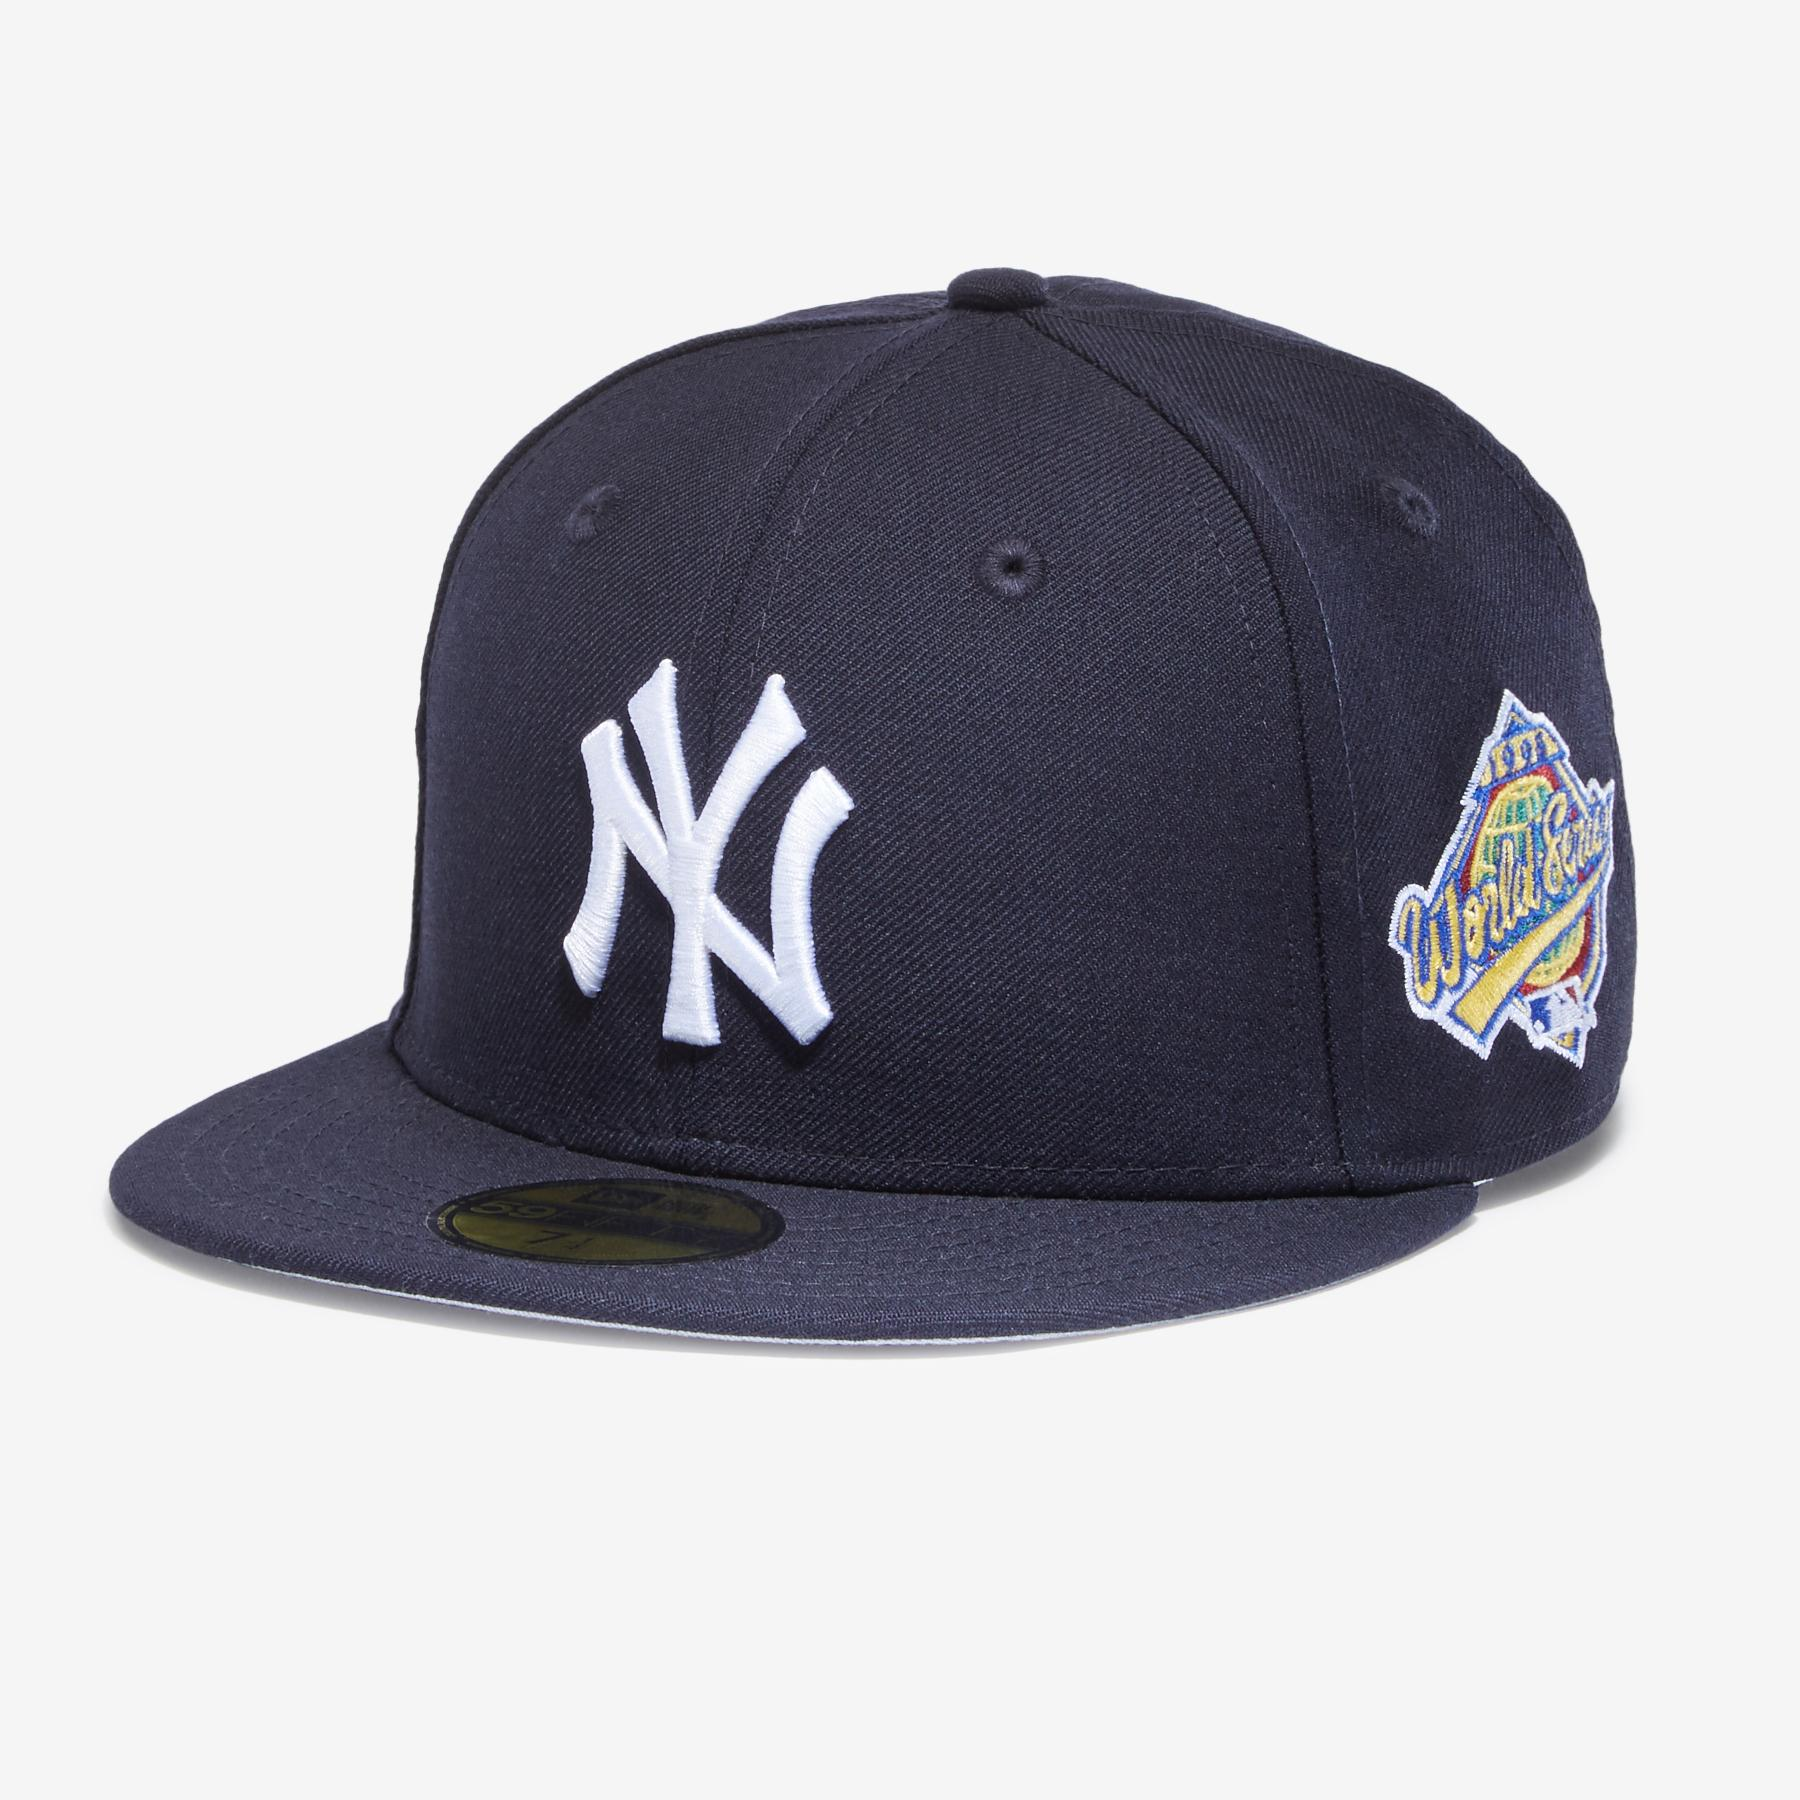 Yankees 1996 World Series 59fifty Fitted